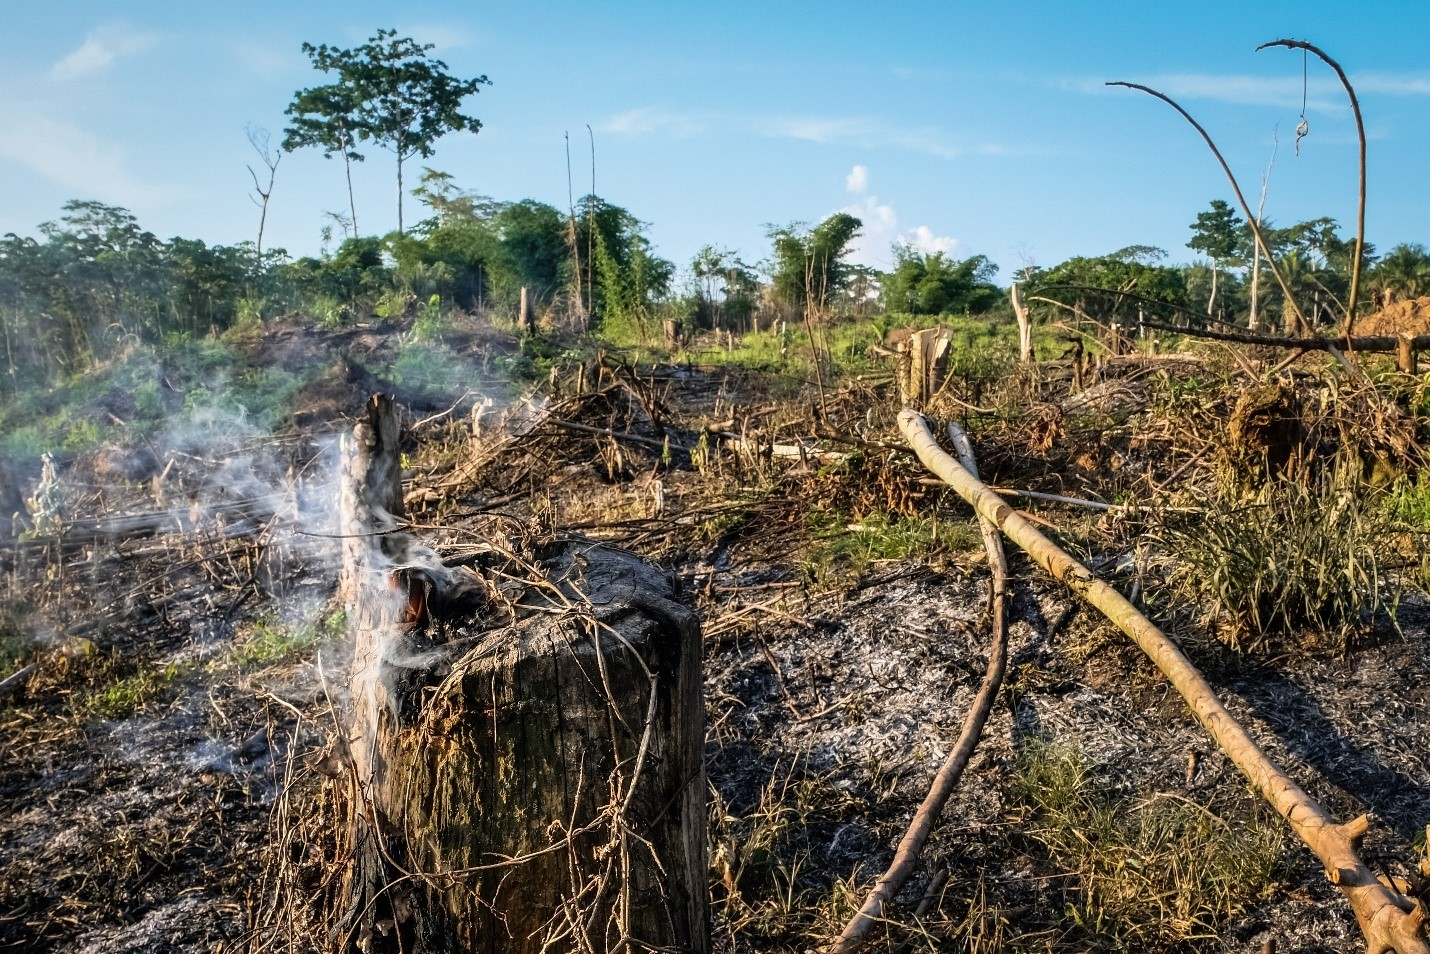 <p>Area cleared for agriculture near Yangambi, DRC. Flickr/CIFOR</p>